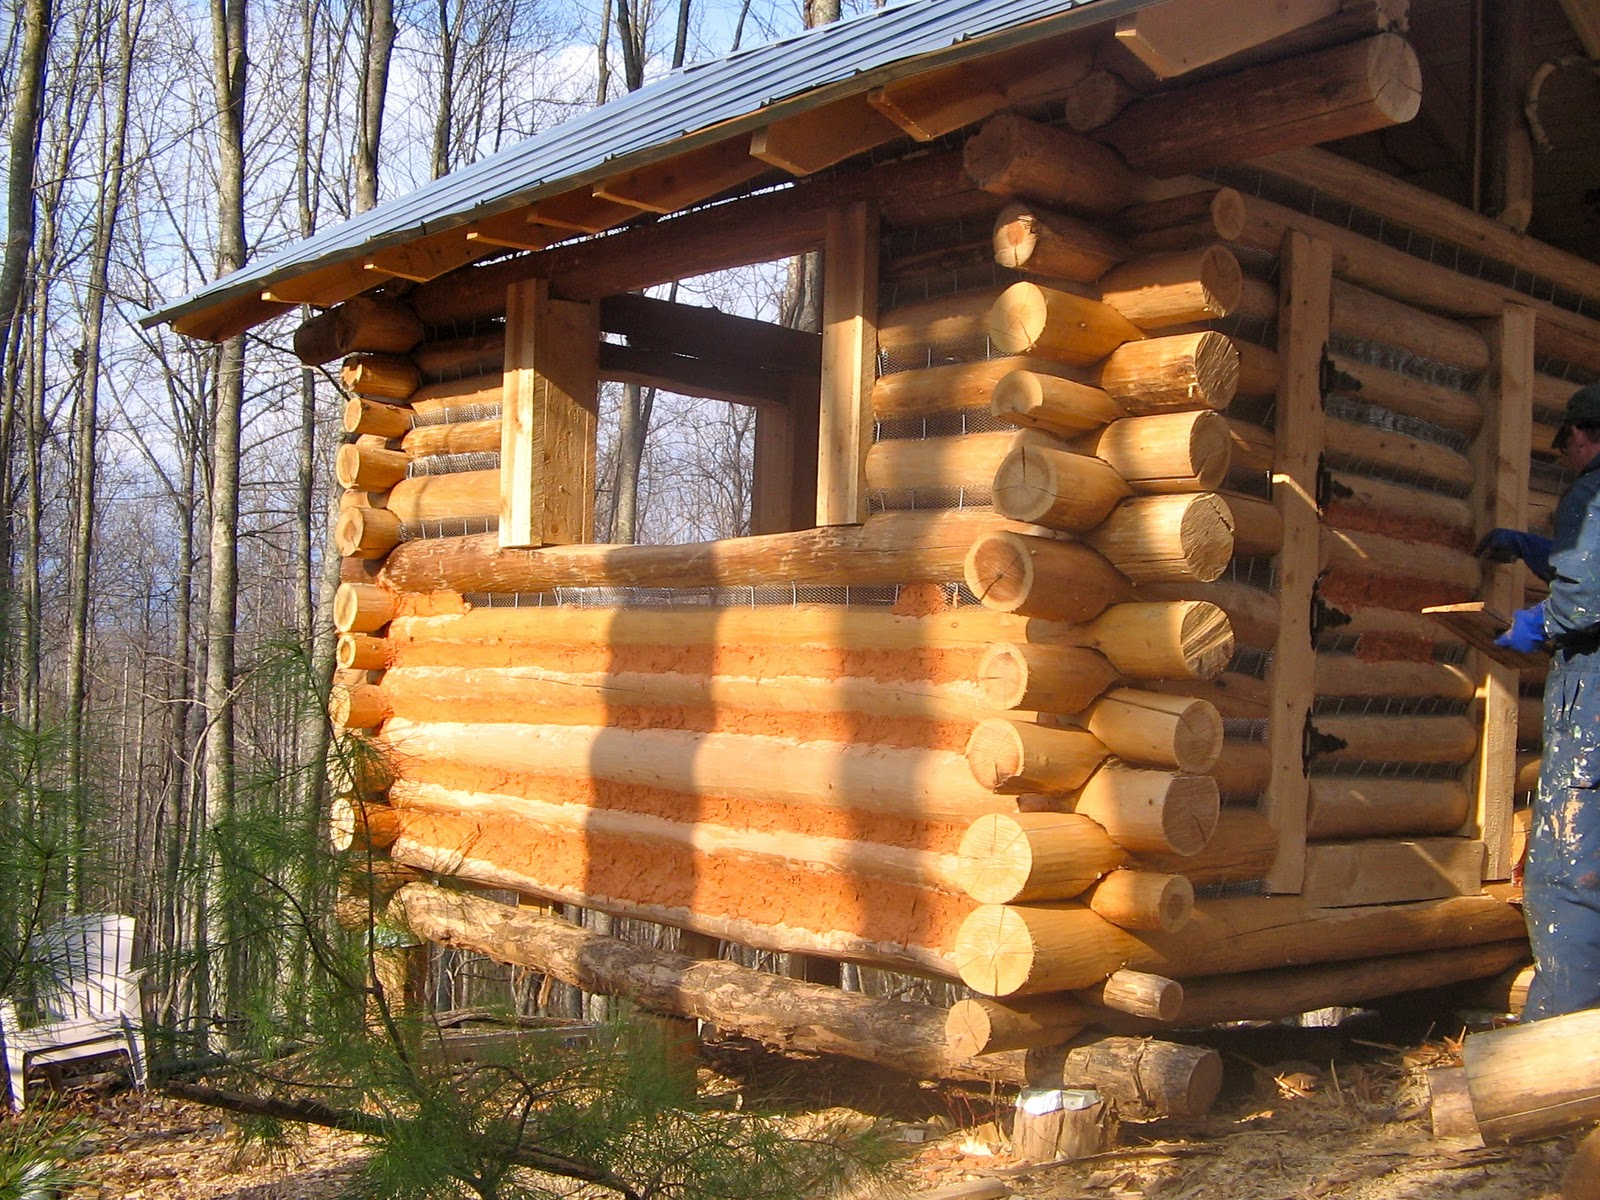 COLD HOLLER: a Postmodern (B)log Cabin in the Land of the Noonday Sun